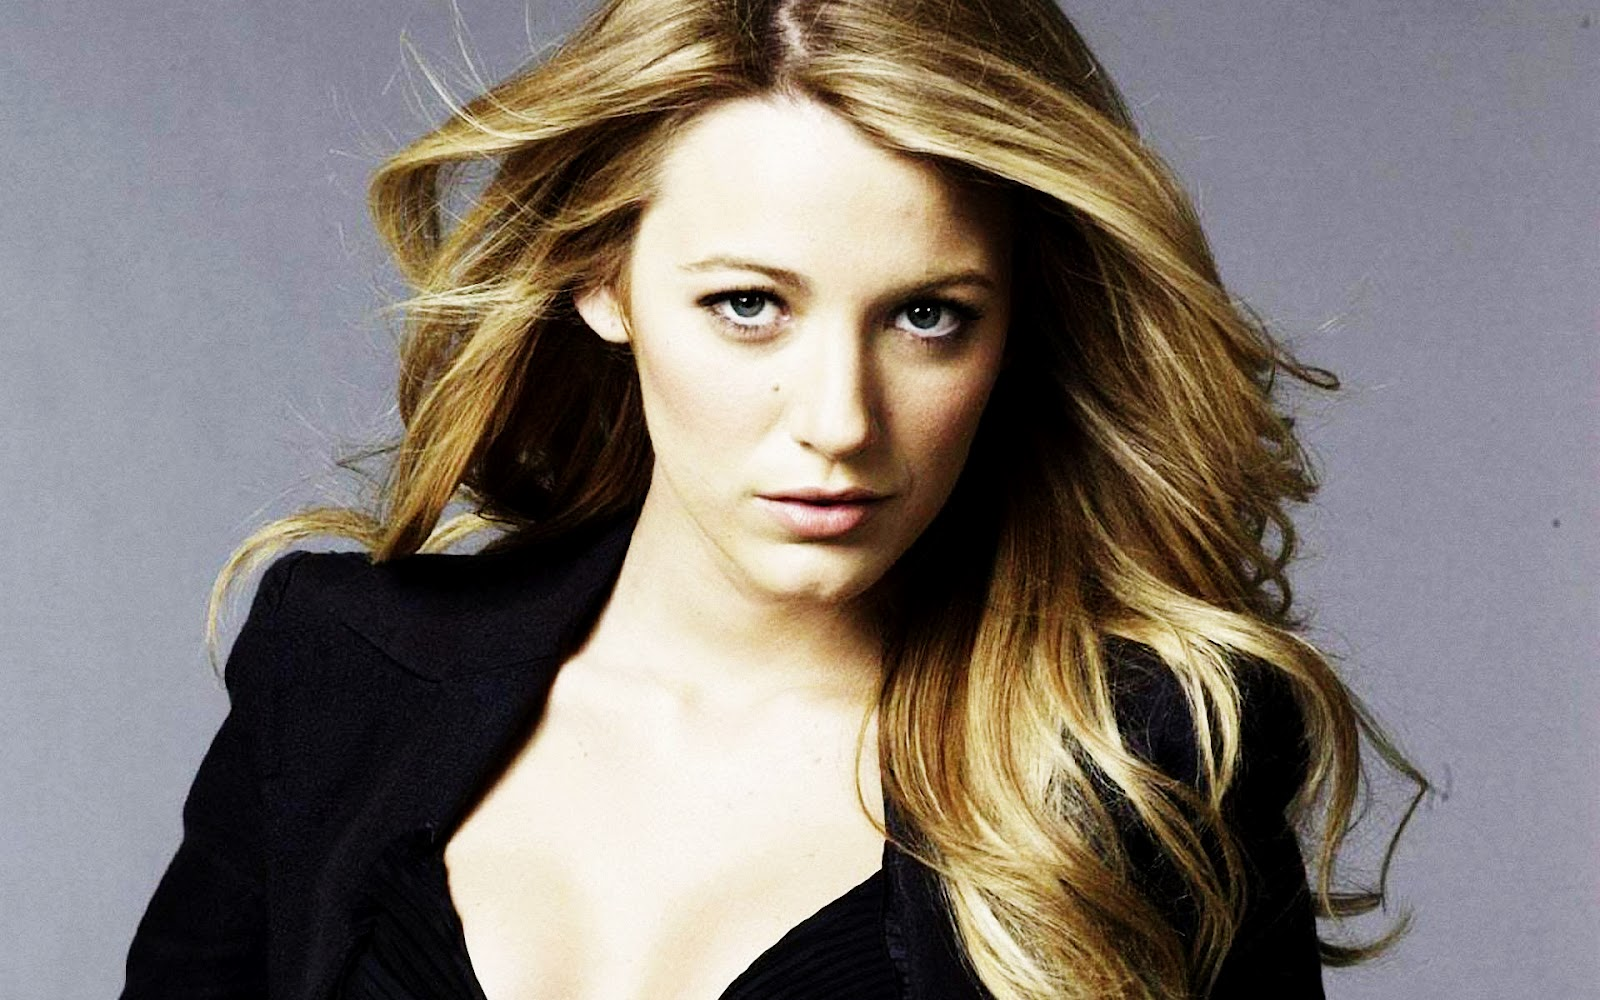 Blake Lively Wallpapers HD | Blake Lively Wallpapers